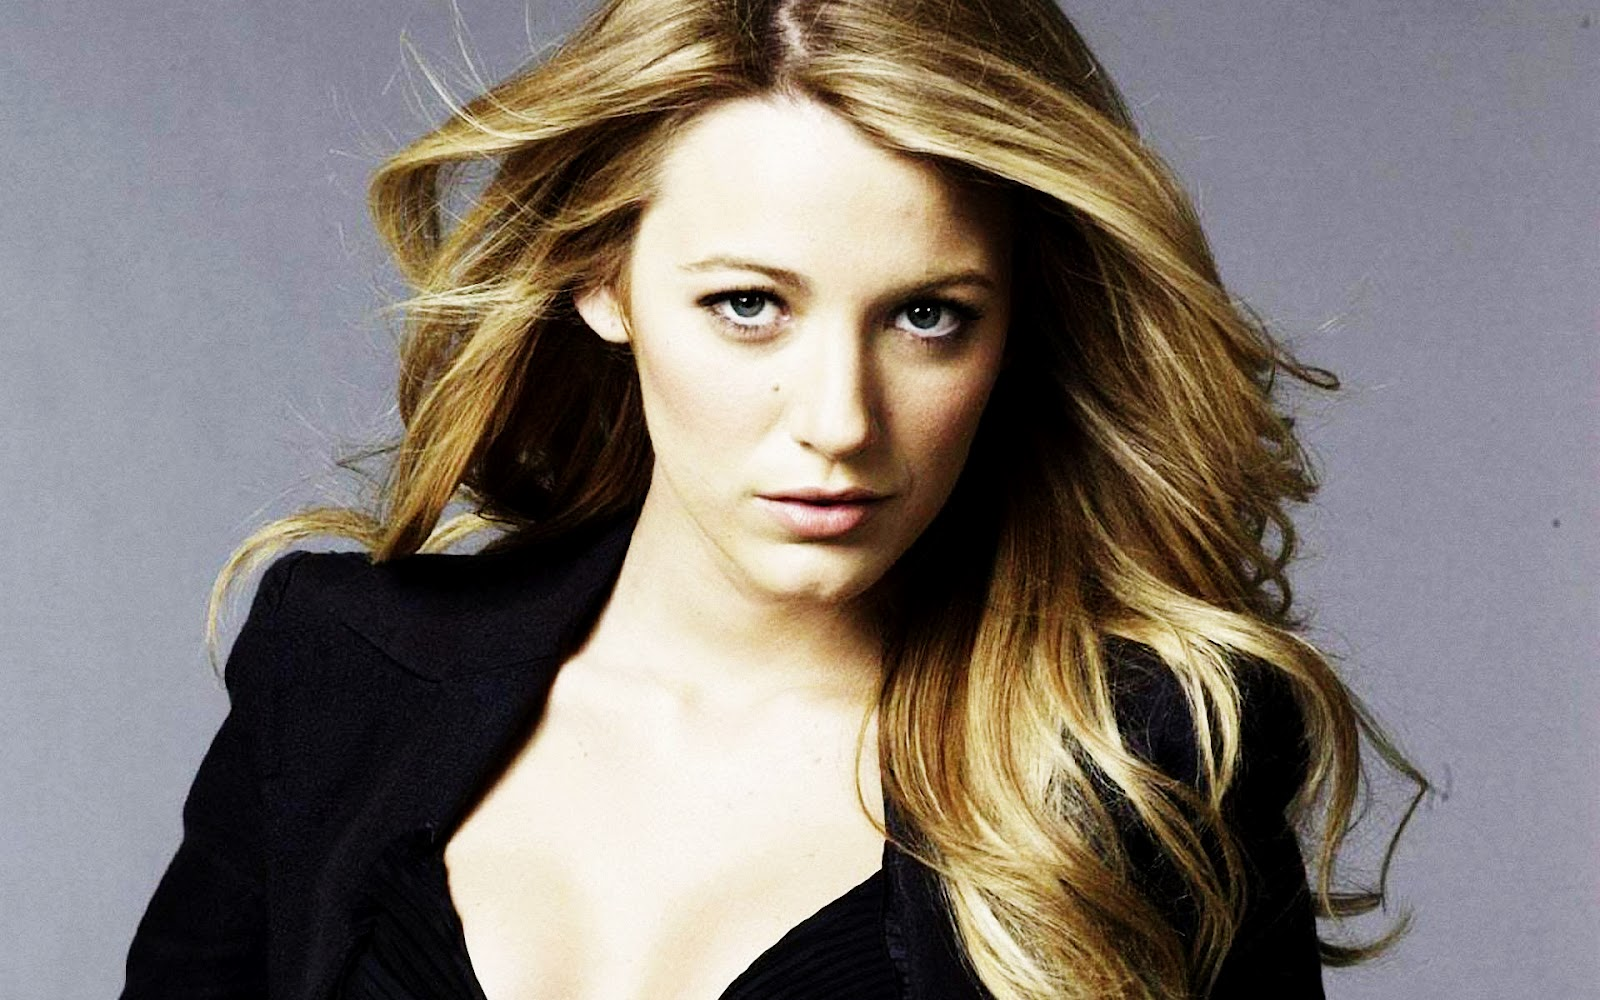 Blake Lively Wallpapers HD | Blake Lively Wallpapers